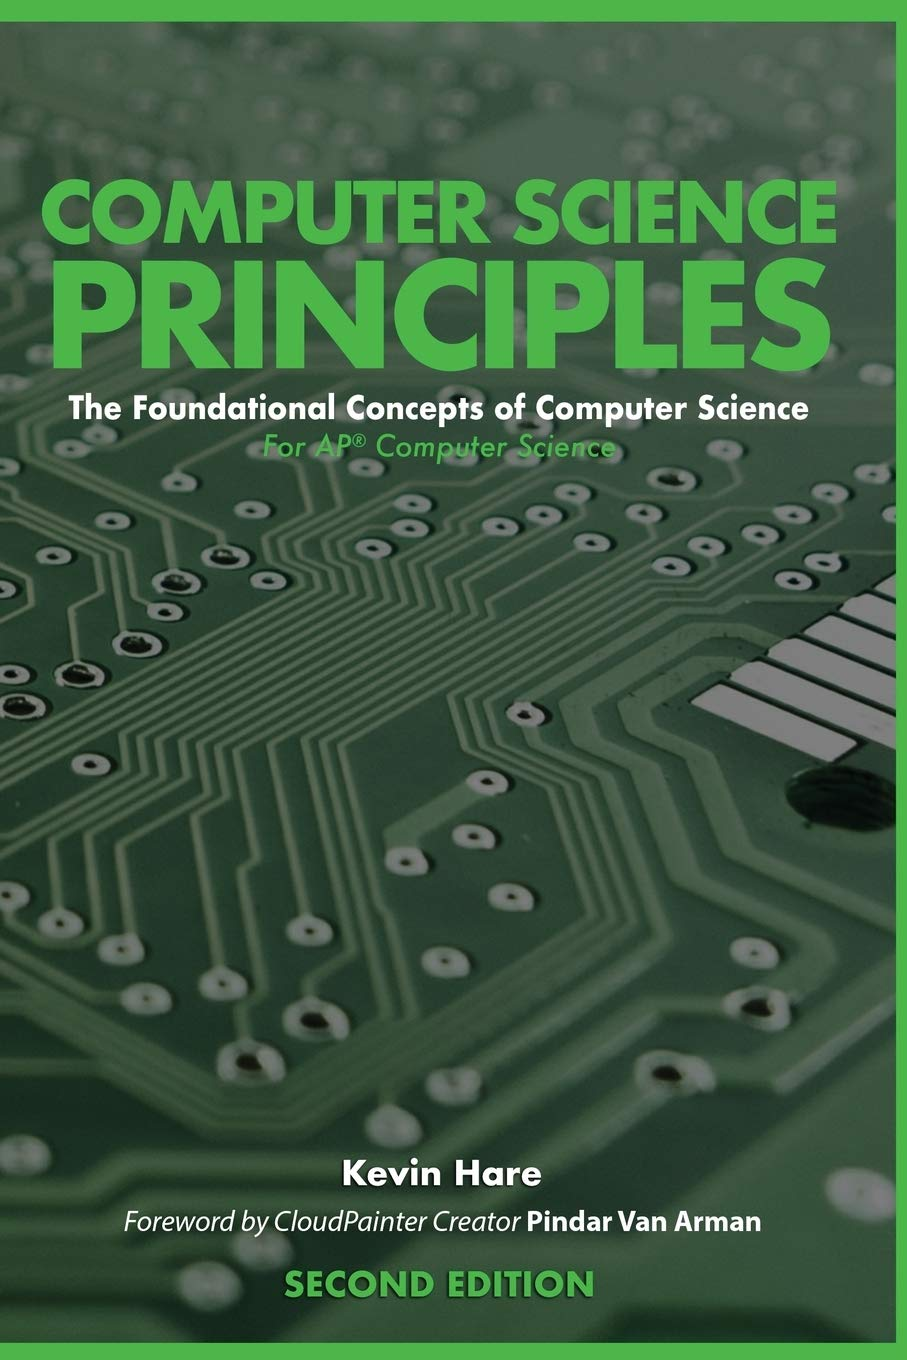 Computer Science Principles  The Foundational Concepts Of Computer Science   For AP® Computer Science Principles